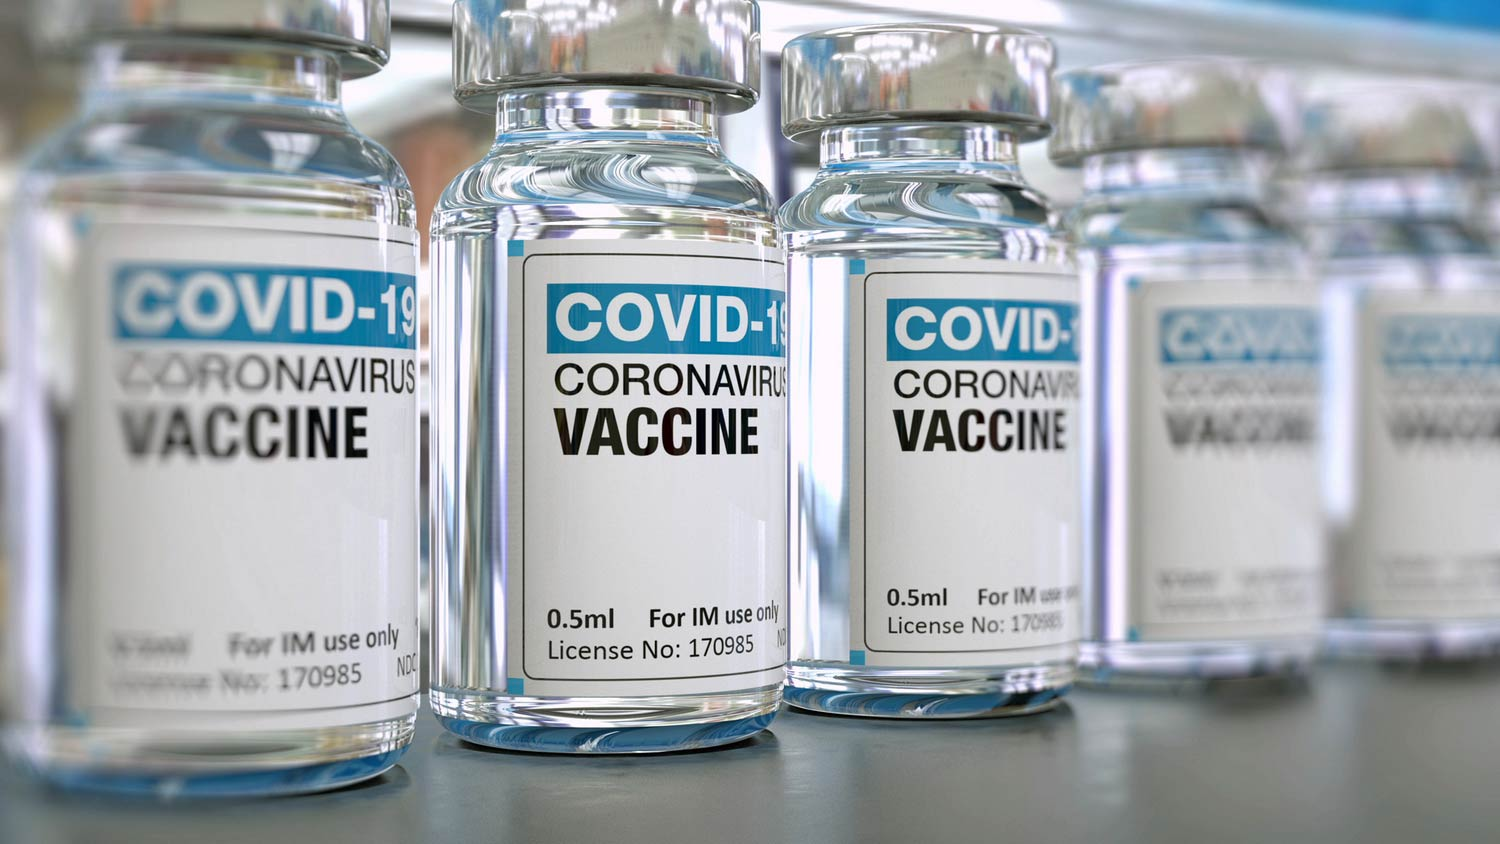 Competition on the global market for COVID - 19 vaccine development